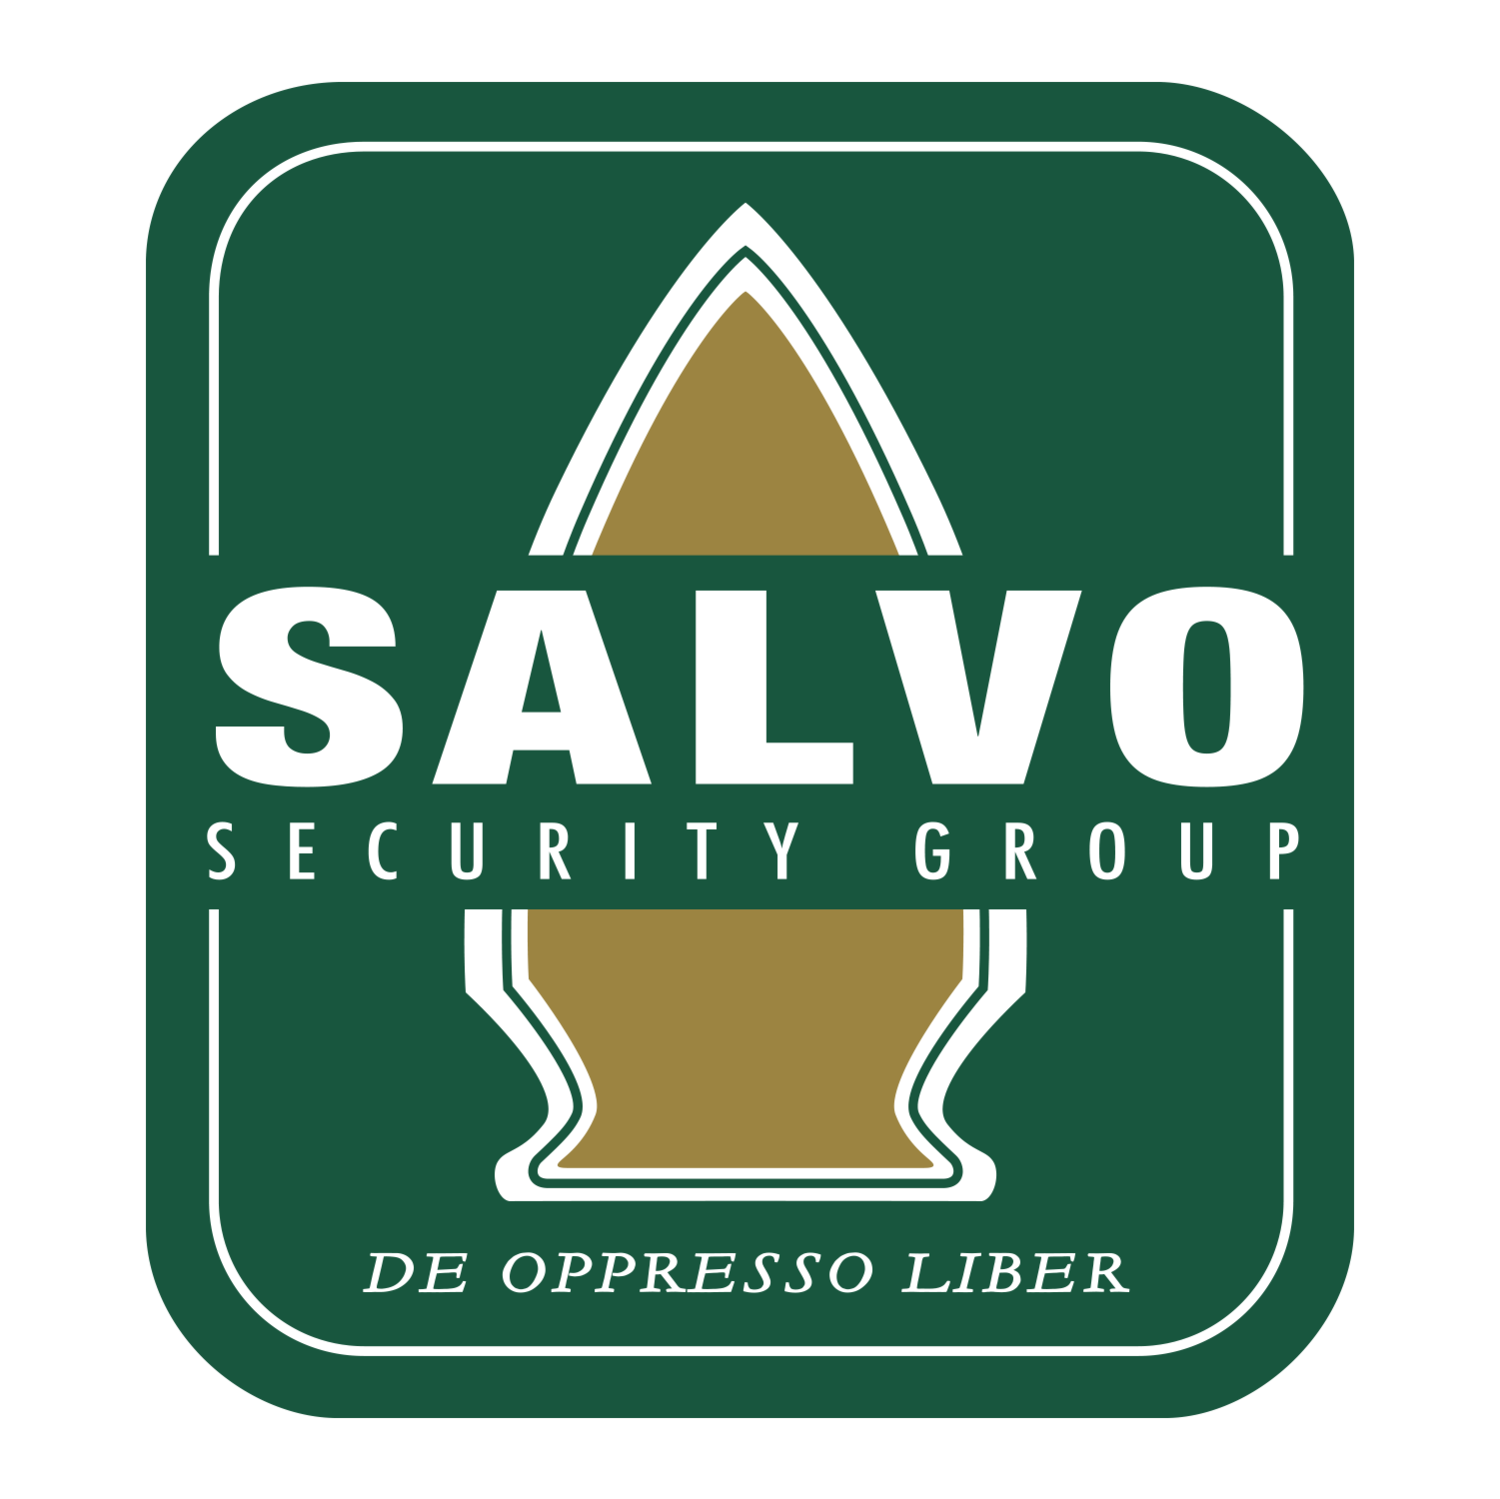 Salvo Security Group